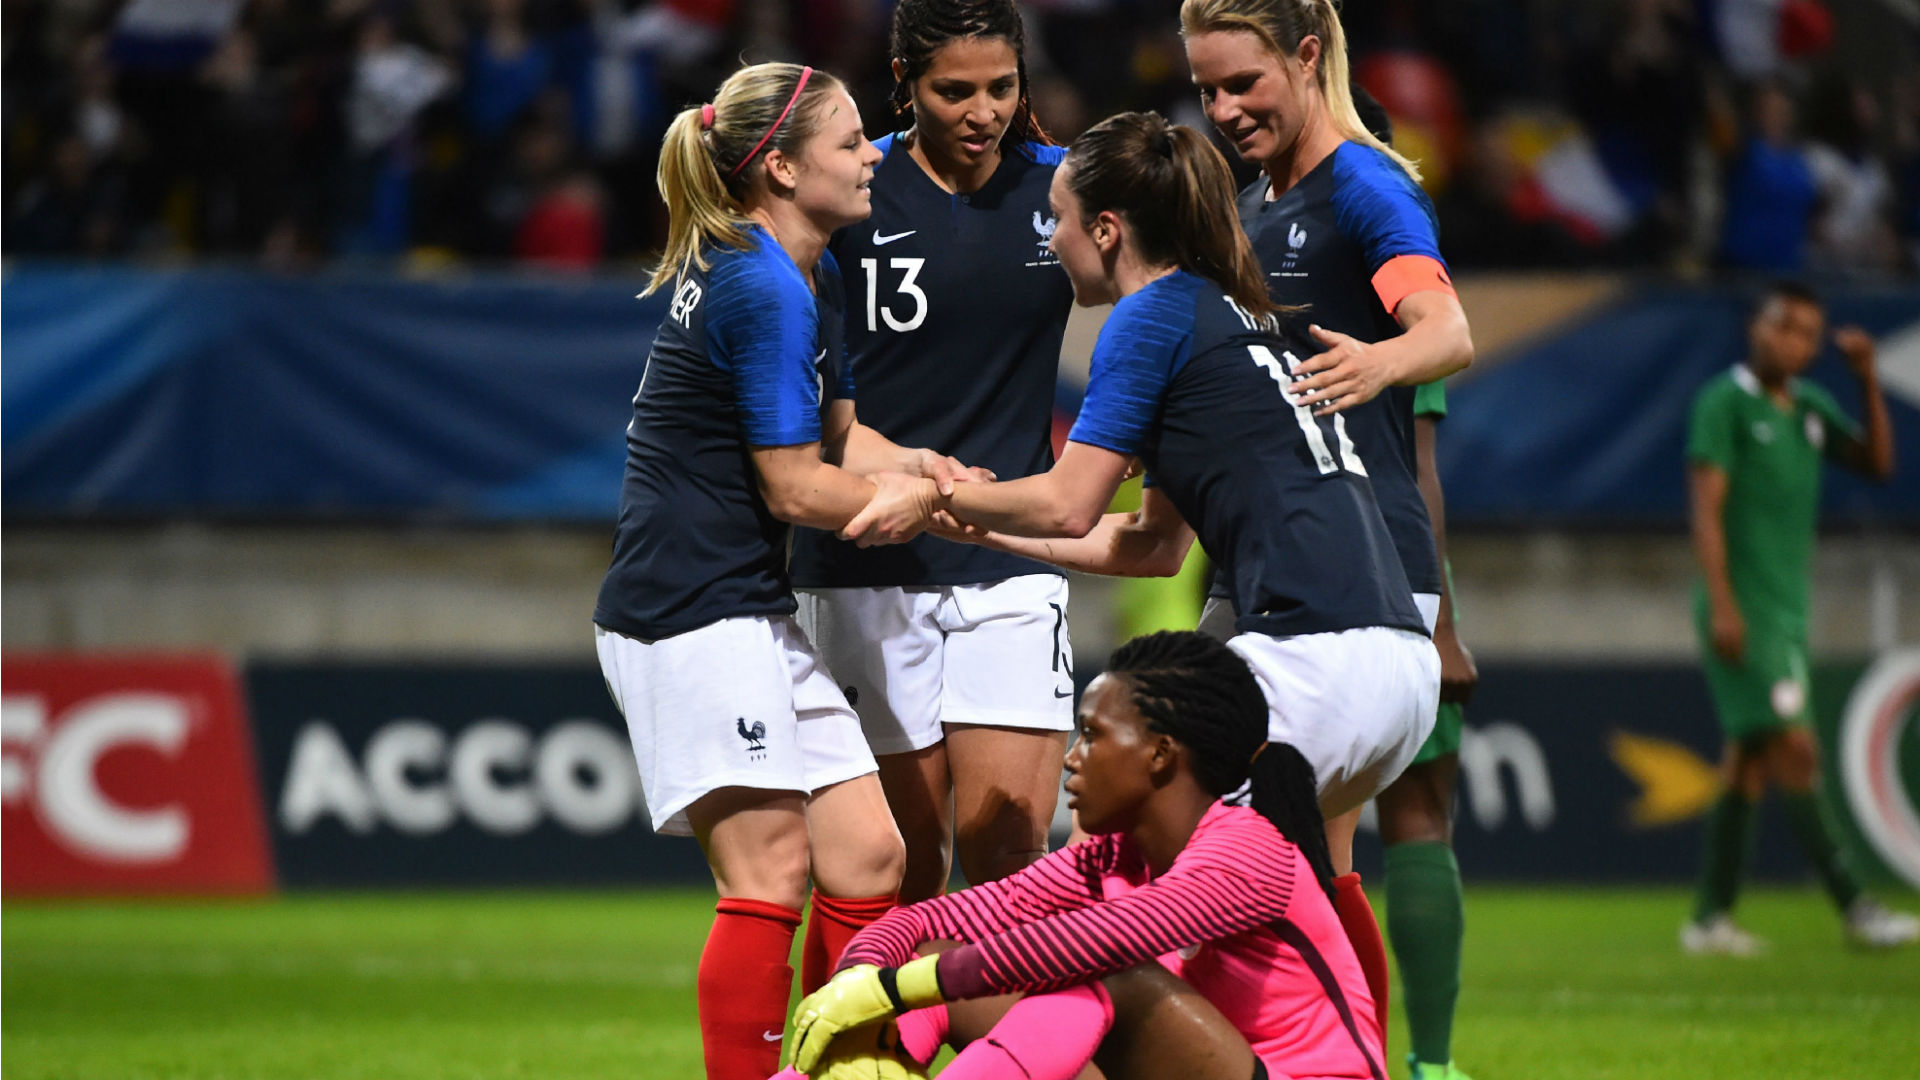 Image result for France Vs Nigeria: Women's Friendly - 8 - 0